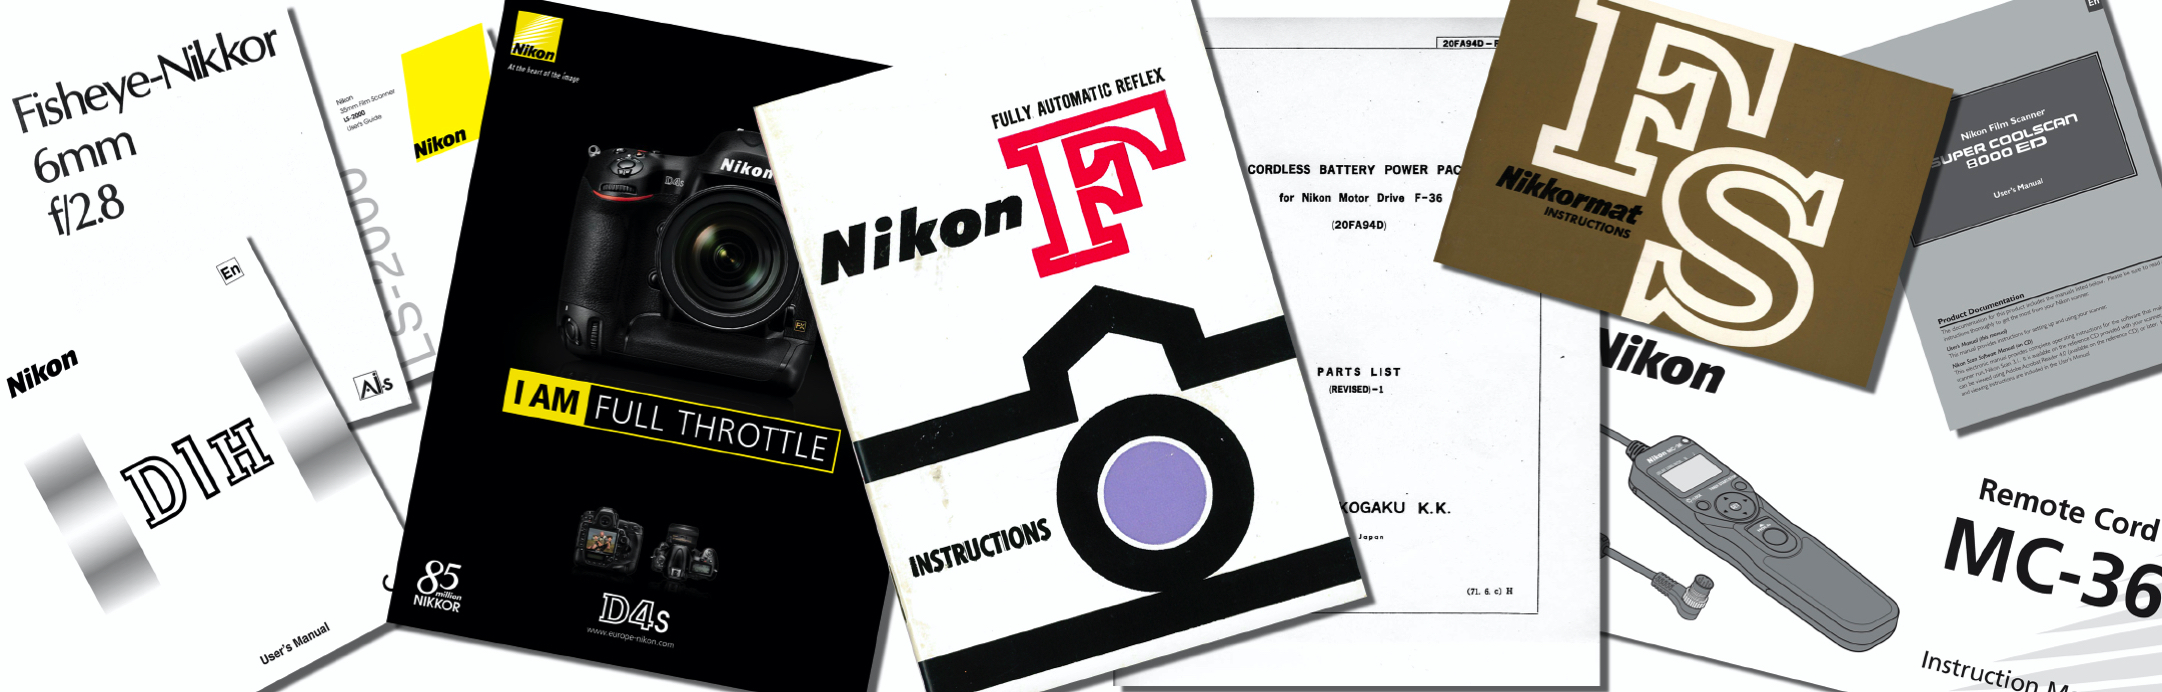 Peter Russell Photography: Nikon Brochures & Manuals on gps diagram, window parts diagram, rca camera diagram, depth of field camera diagram, photography camera diagram, projector diagram, kodak camera diagram, film camera diagram, fuji camera diagram, polaroid camera diagram, d7000 camera diagram, gopro camera diagram, camera obscura diagram, canon camera diagram, nokia camera diagram, olympus camera diagram, pentax k1000 camera diagram, mirrorless camera diagram,